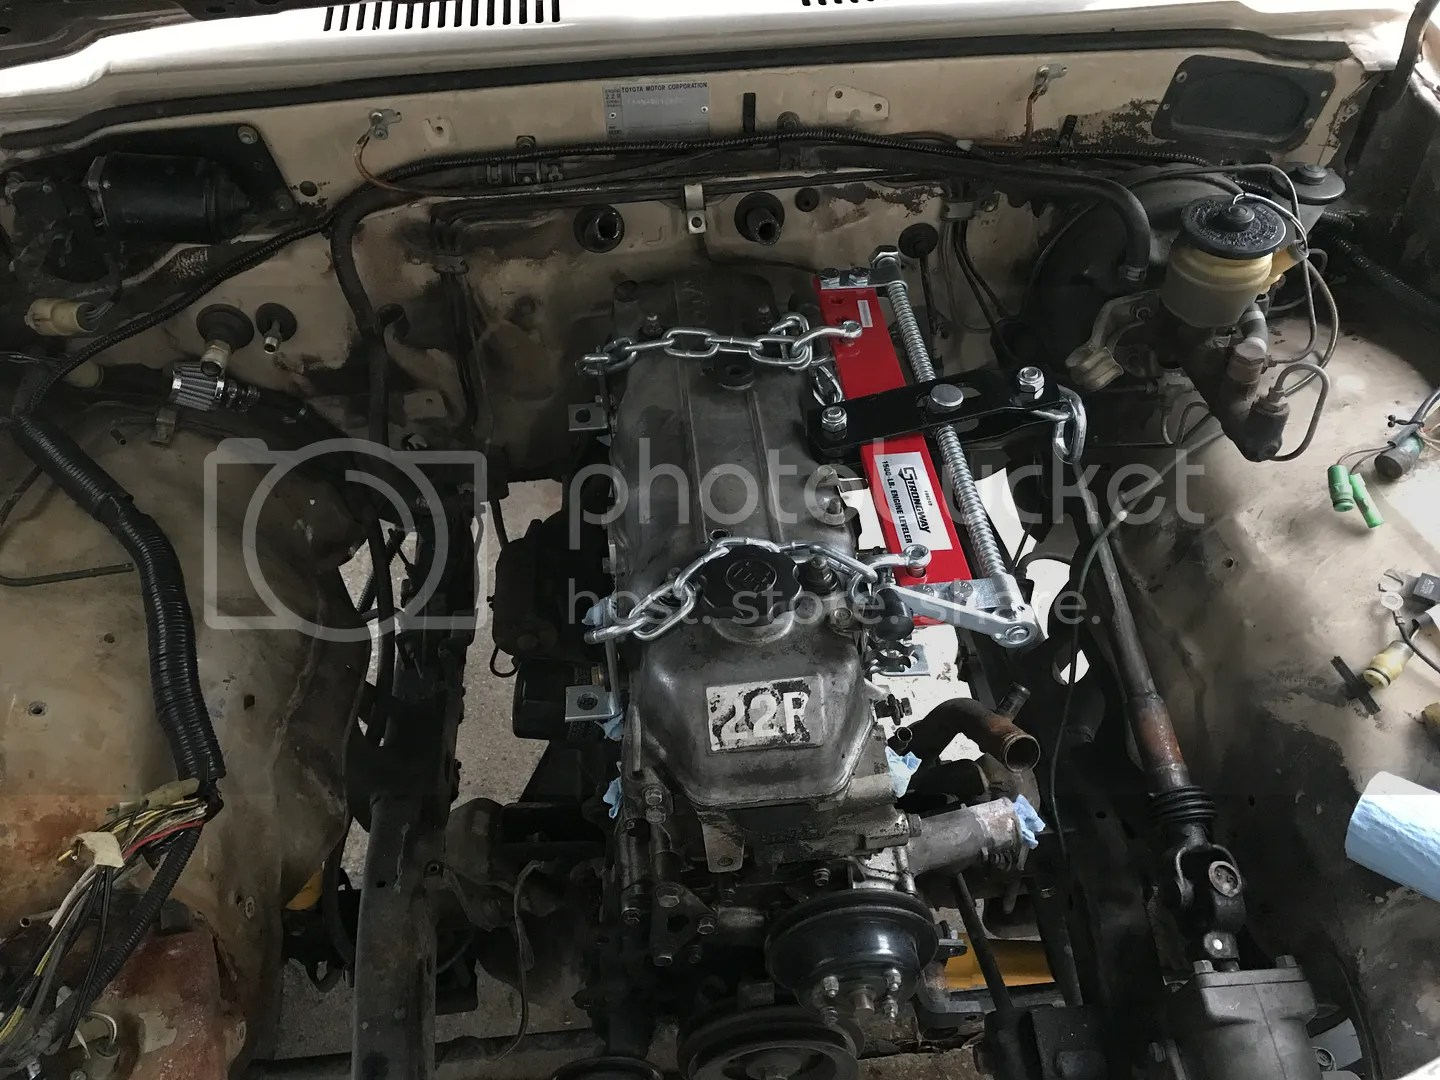 hight resolution of  out and clean up the engine bay and front part of the frame it ll be a minimum of 300 still debating that if so i ll put some por15 on everything